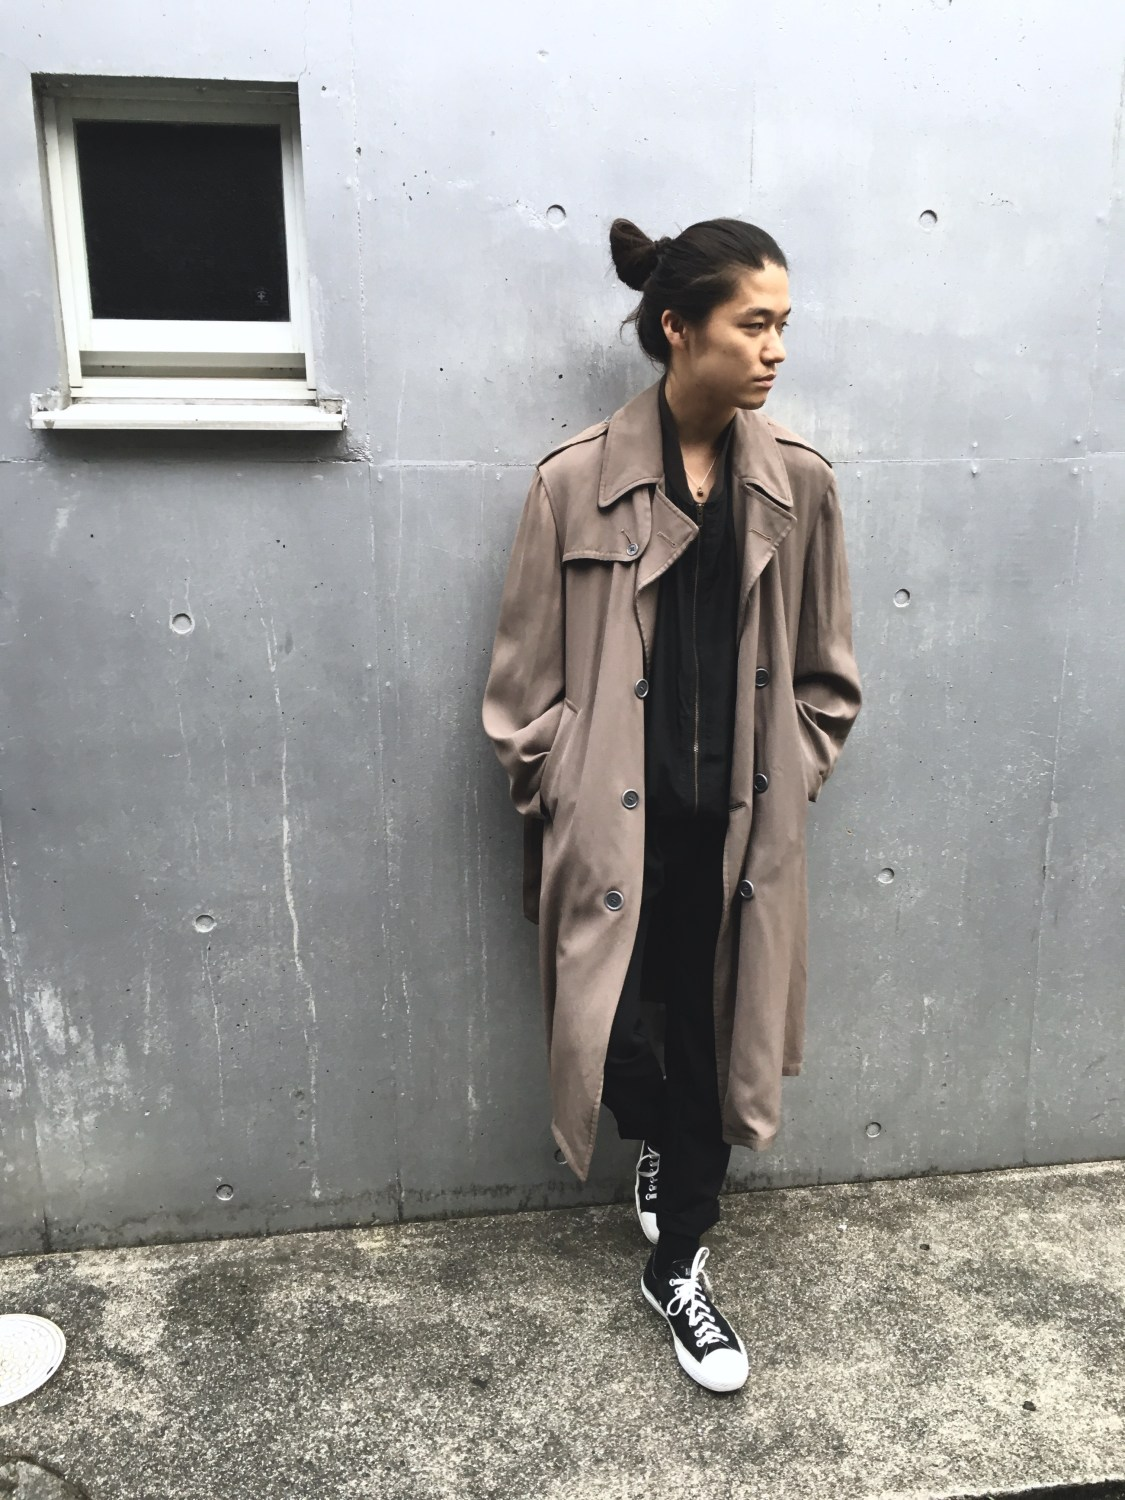 Vintage Gabardine Trench Coat Part2 test vintage styling blog